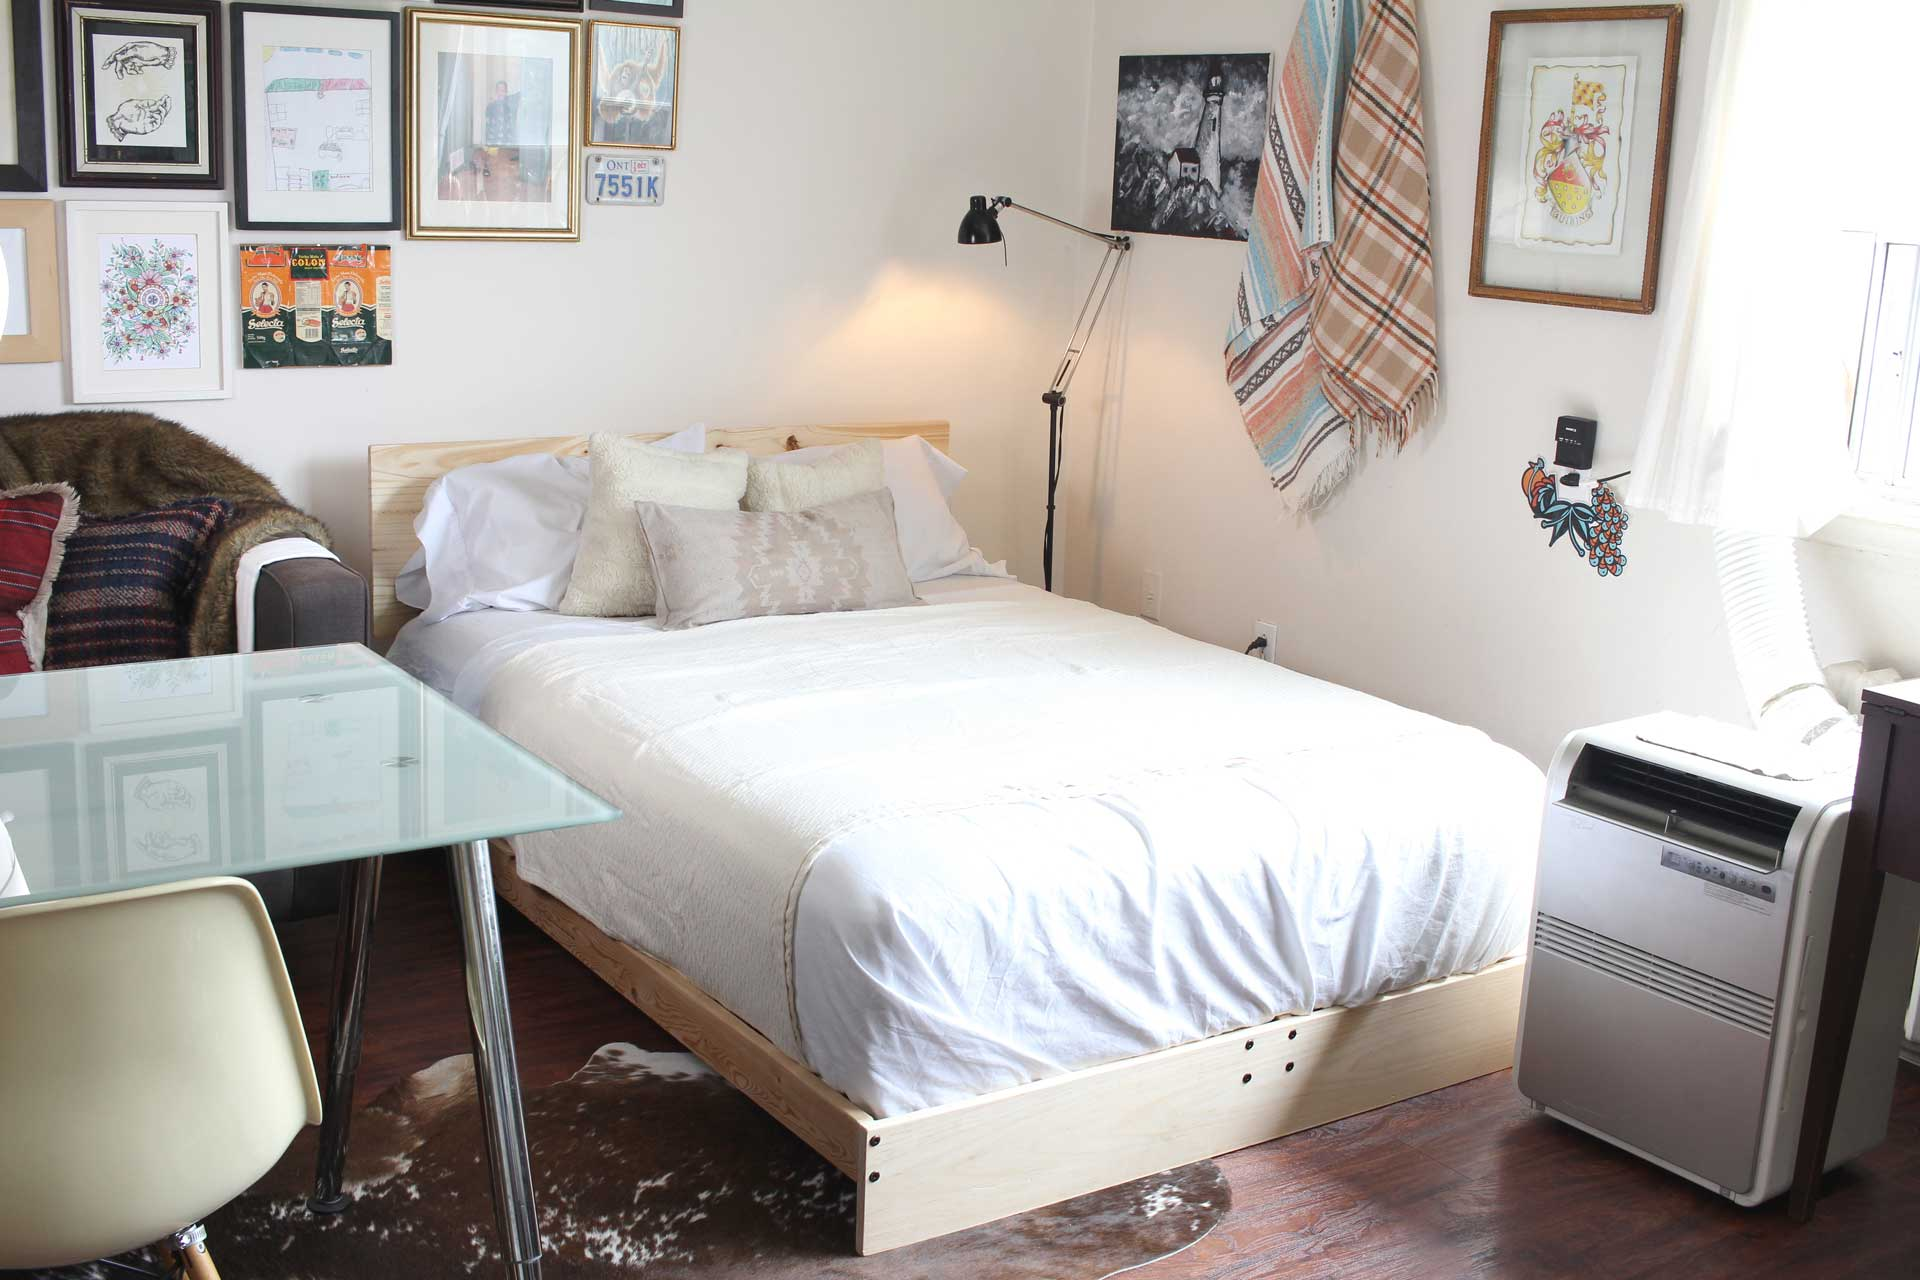 Upcycled Ikea futon into a bed frame